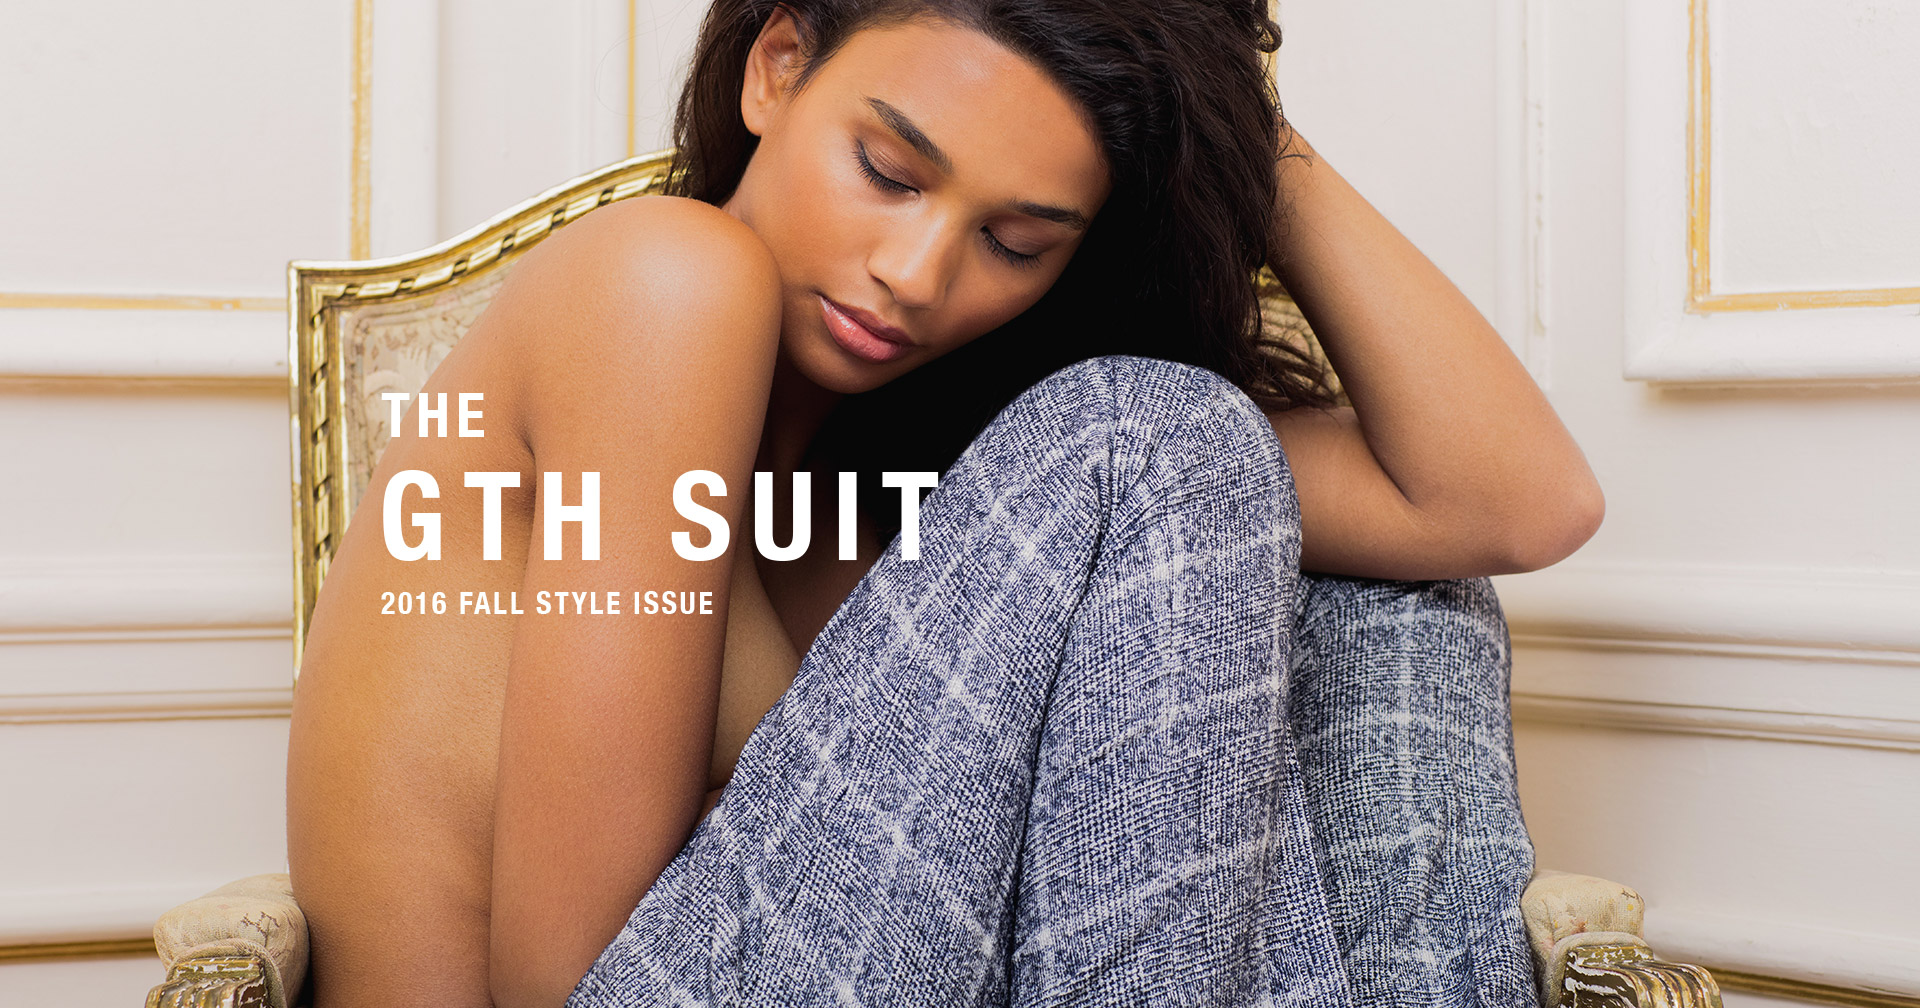 The GTH Suit